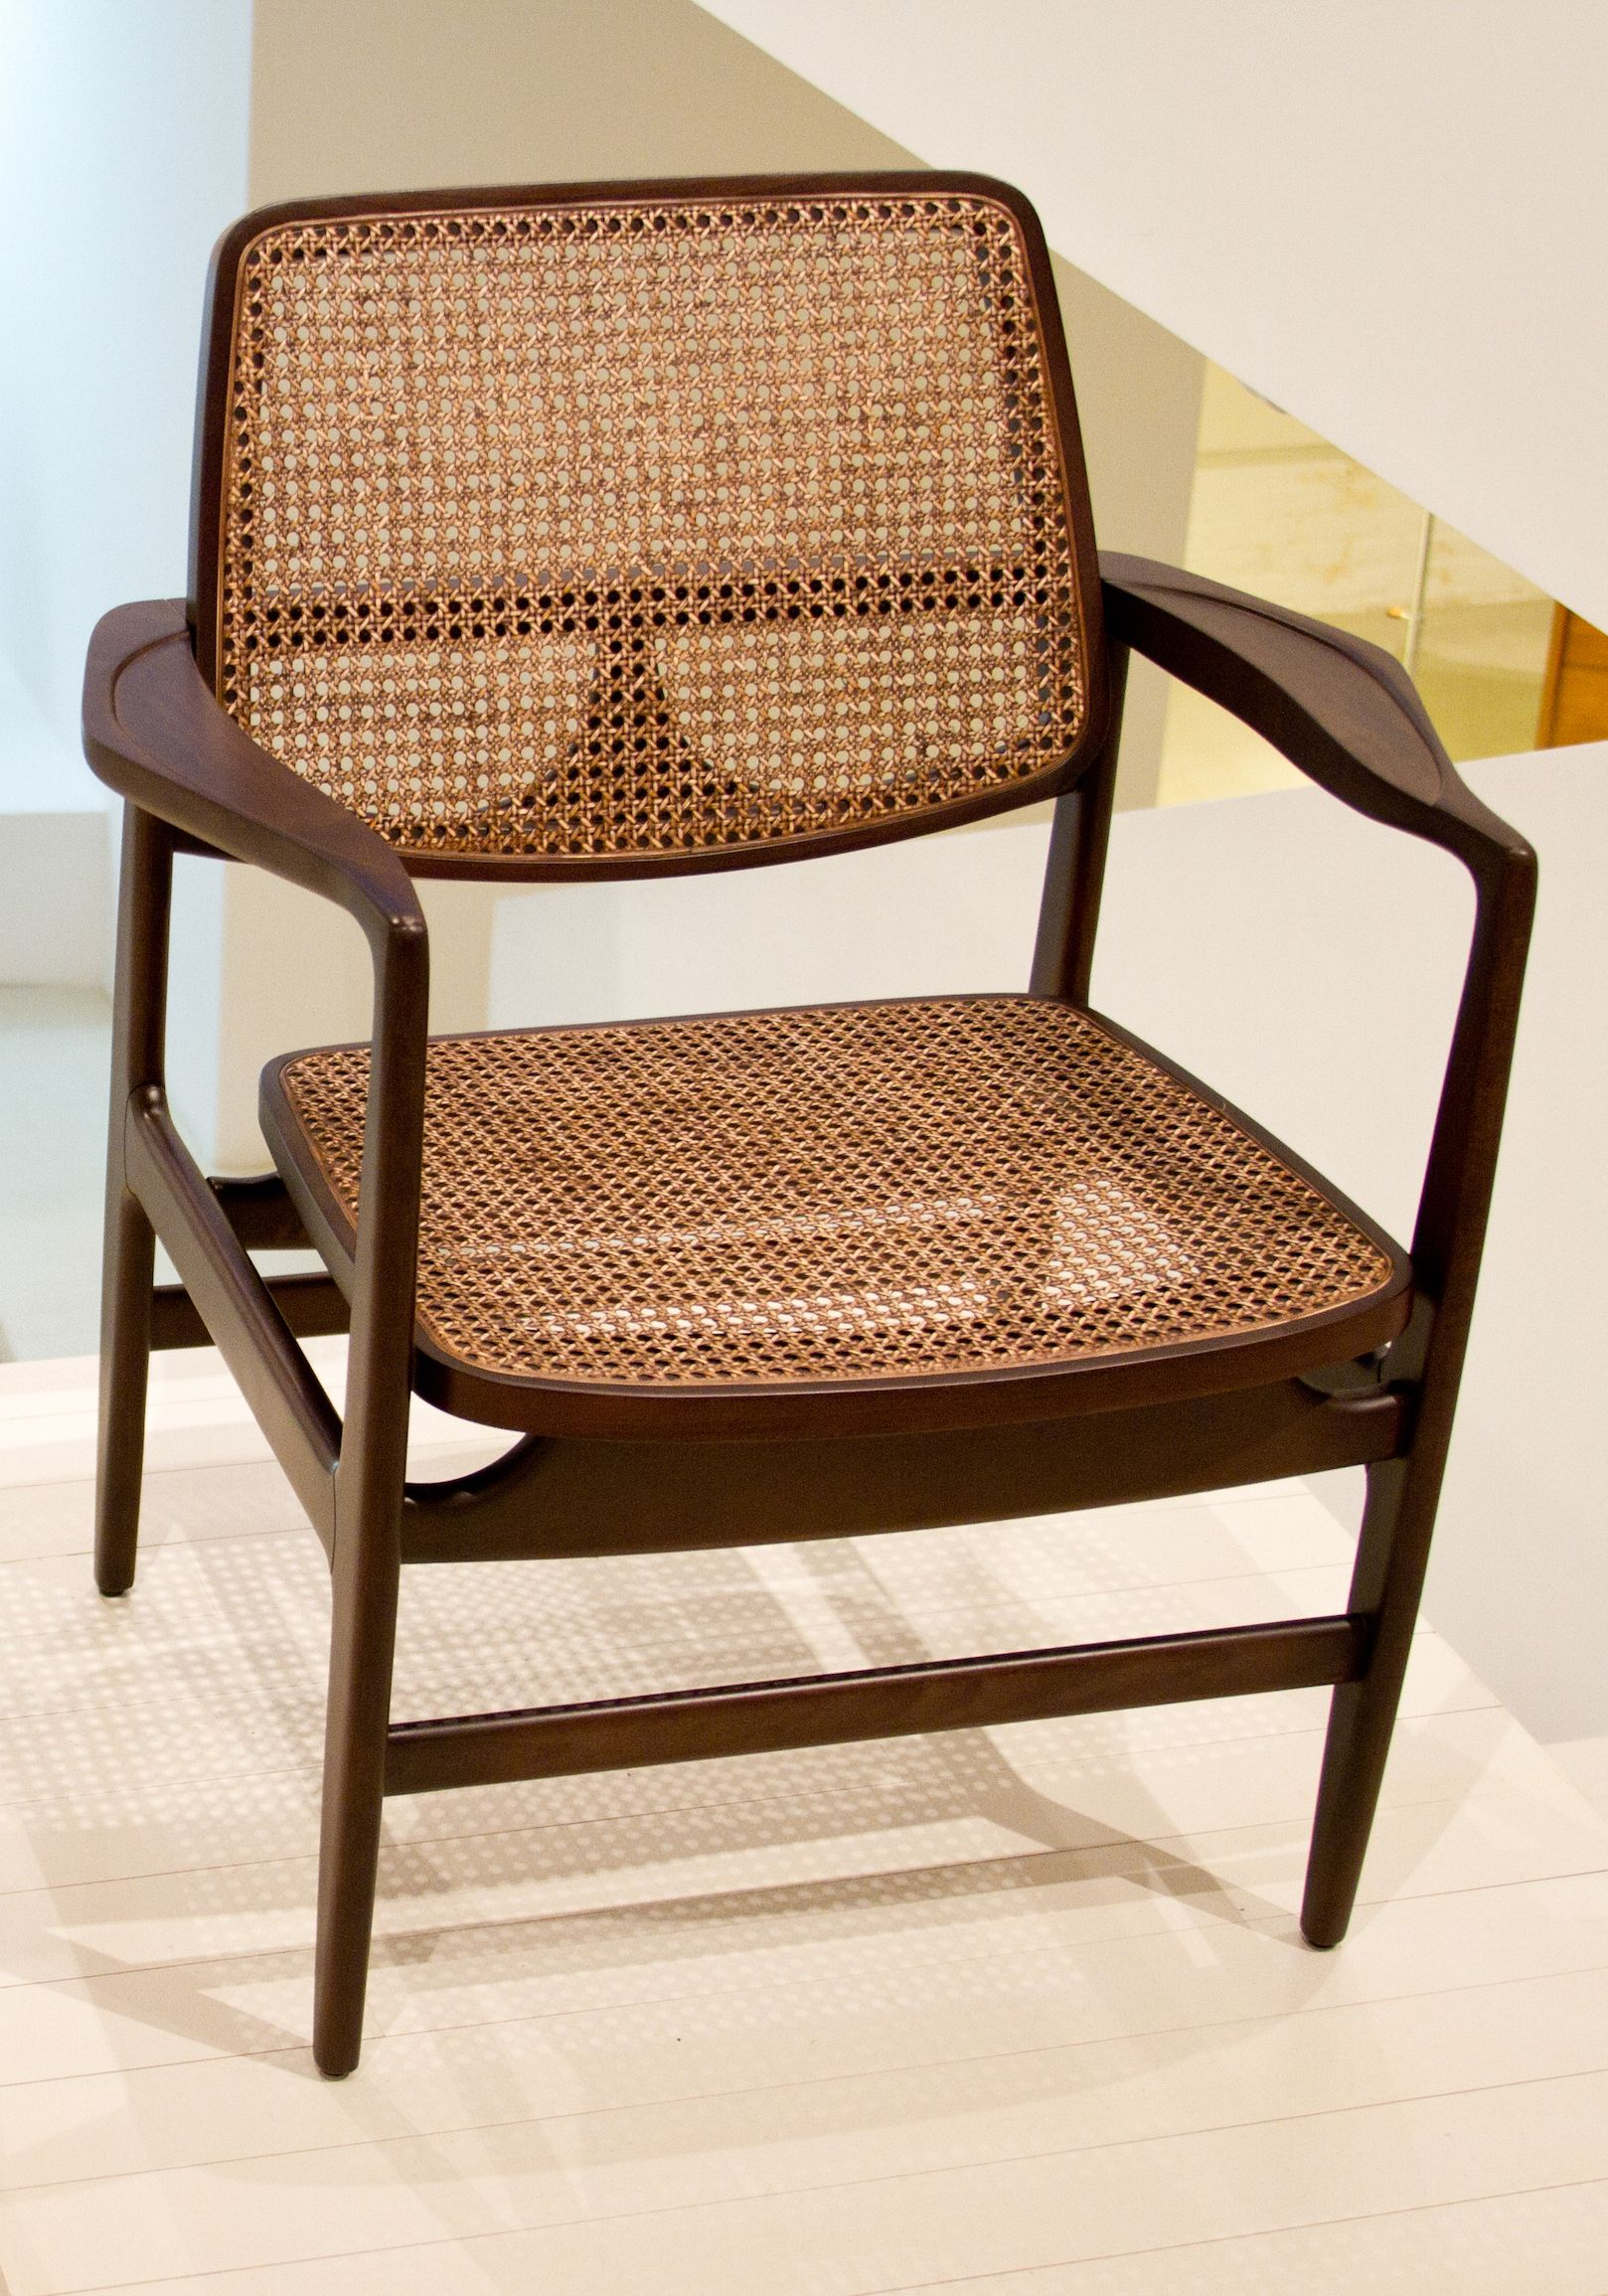 Oscar armchair by Sergio Rodrigues. Available at ESPASSO